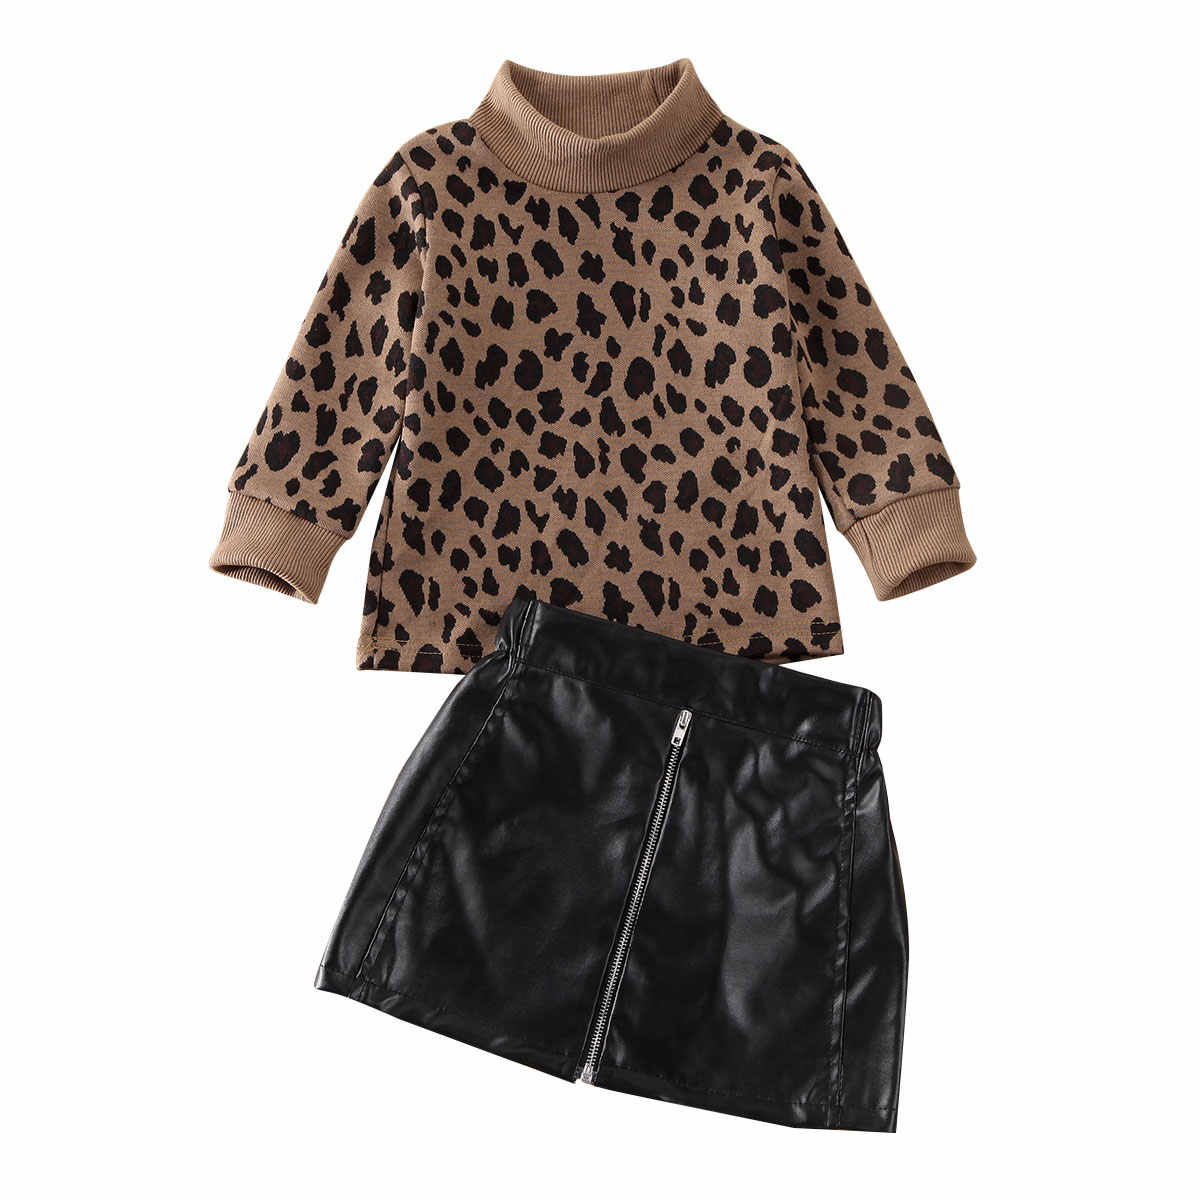 2020 Fashion Toddler Baby Girl Kid Leopard Sweater Tops+Cortical Mini Skirt Outfit Autumn Winter Girl Clothes Set